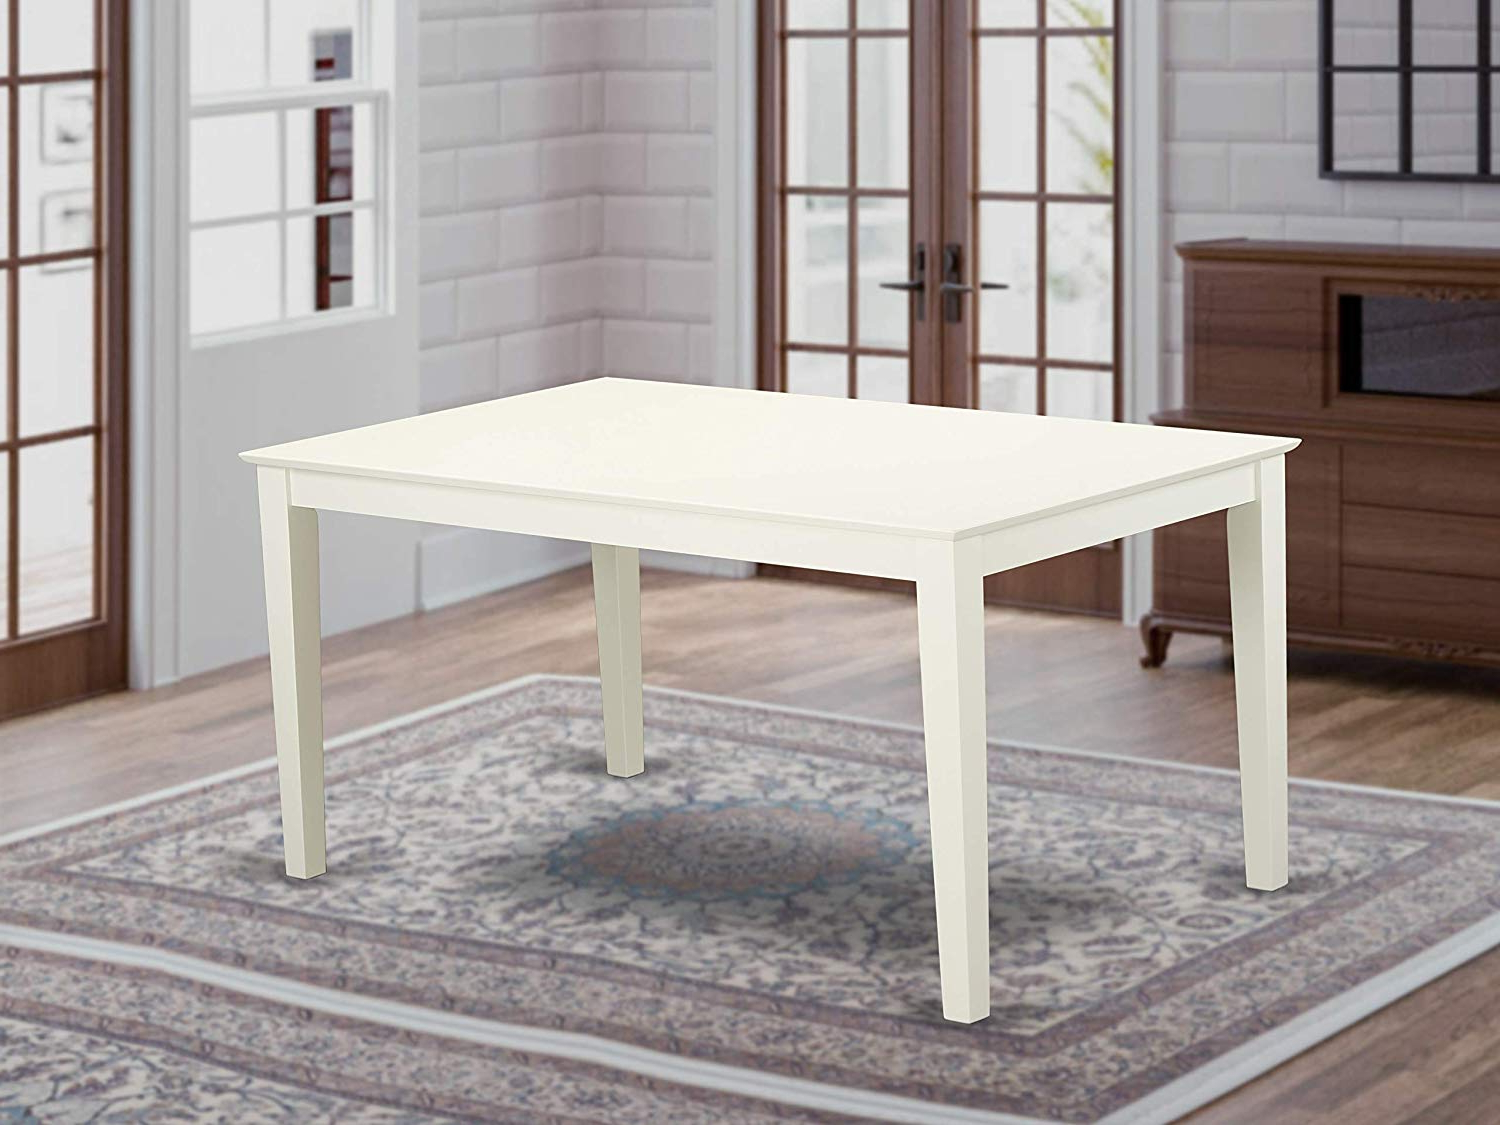 "Capri Rectangular Dining Table 36""x60"" With Solid Wood Top In Linen White  Finish Within Well Known Small Dining Tables With Rustic Pine Ash Brown Finish (View 11 of 25)"